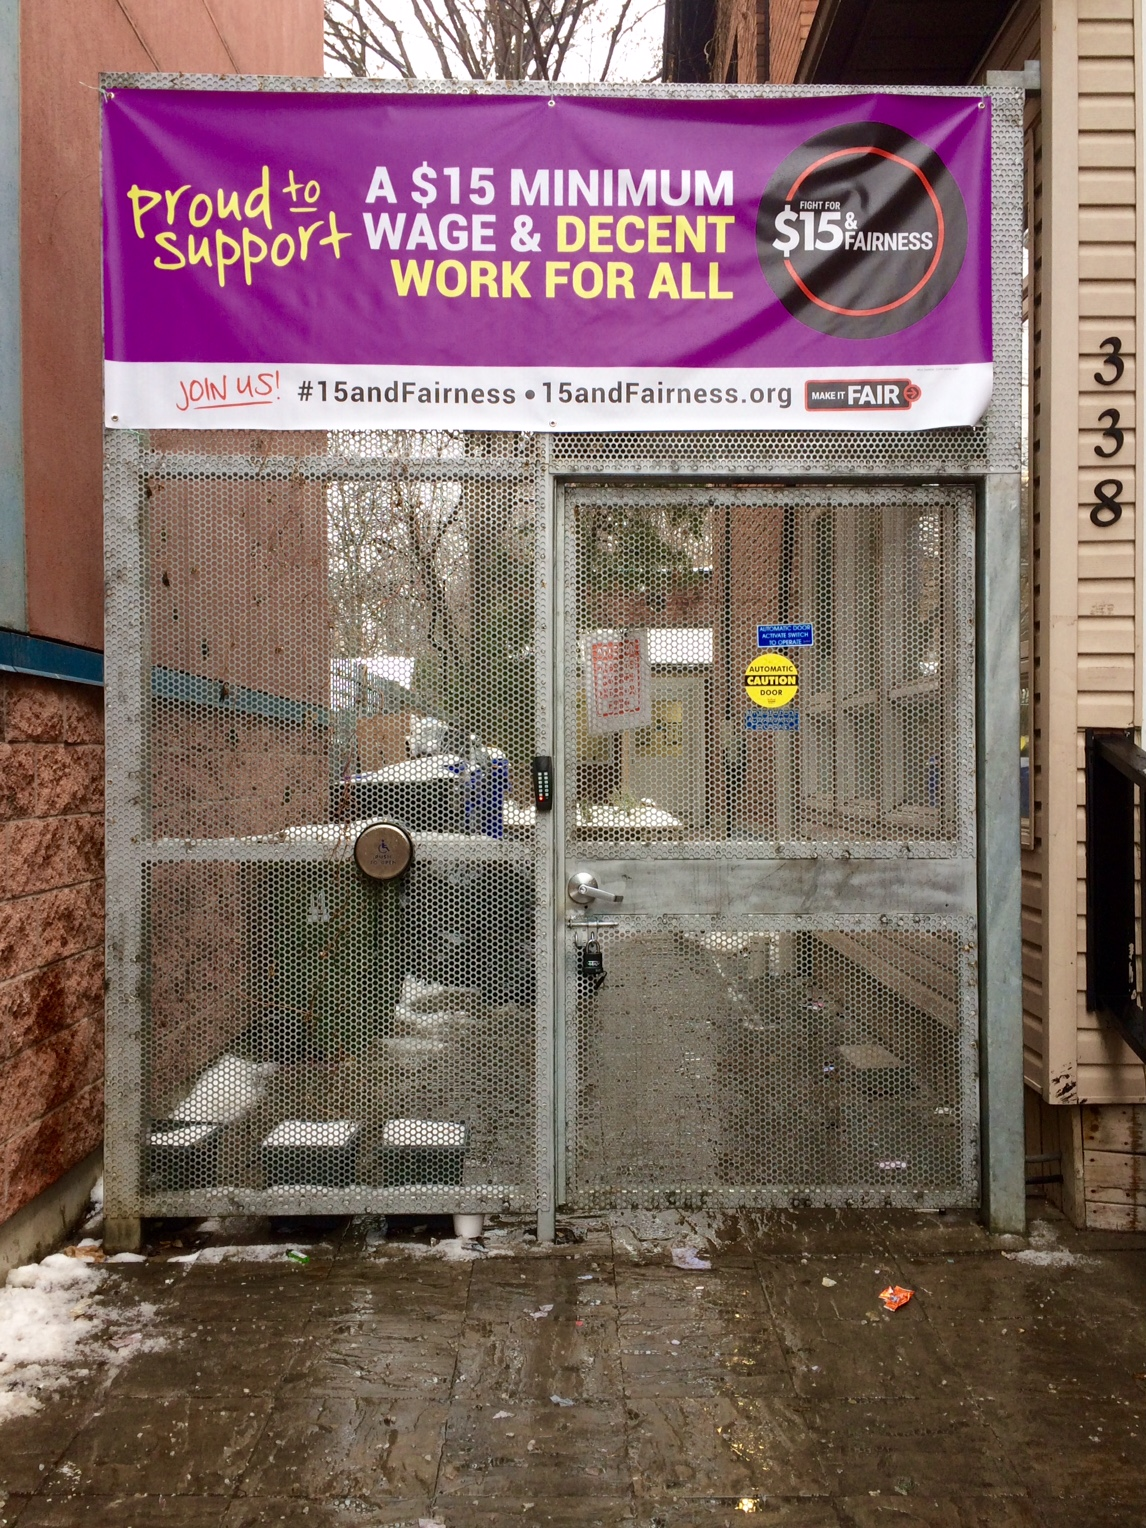 """The image shows a metal gate between two buildings. At the top of the gate is a purple banner that reads """"Proud to support A $15 minimum wage and decent work for all"""""""